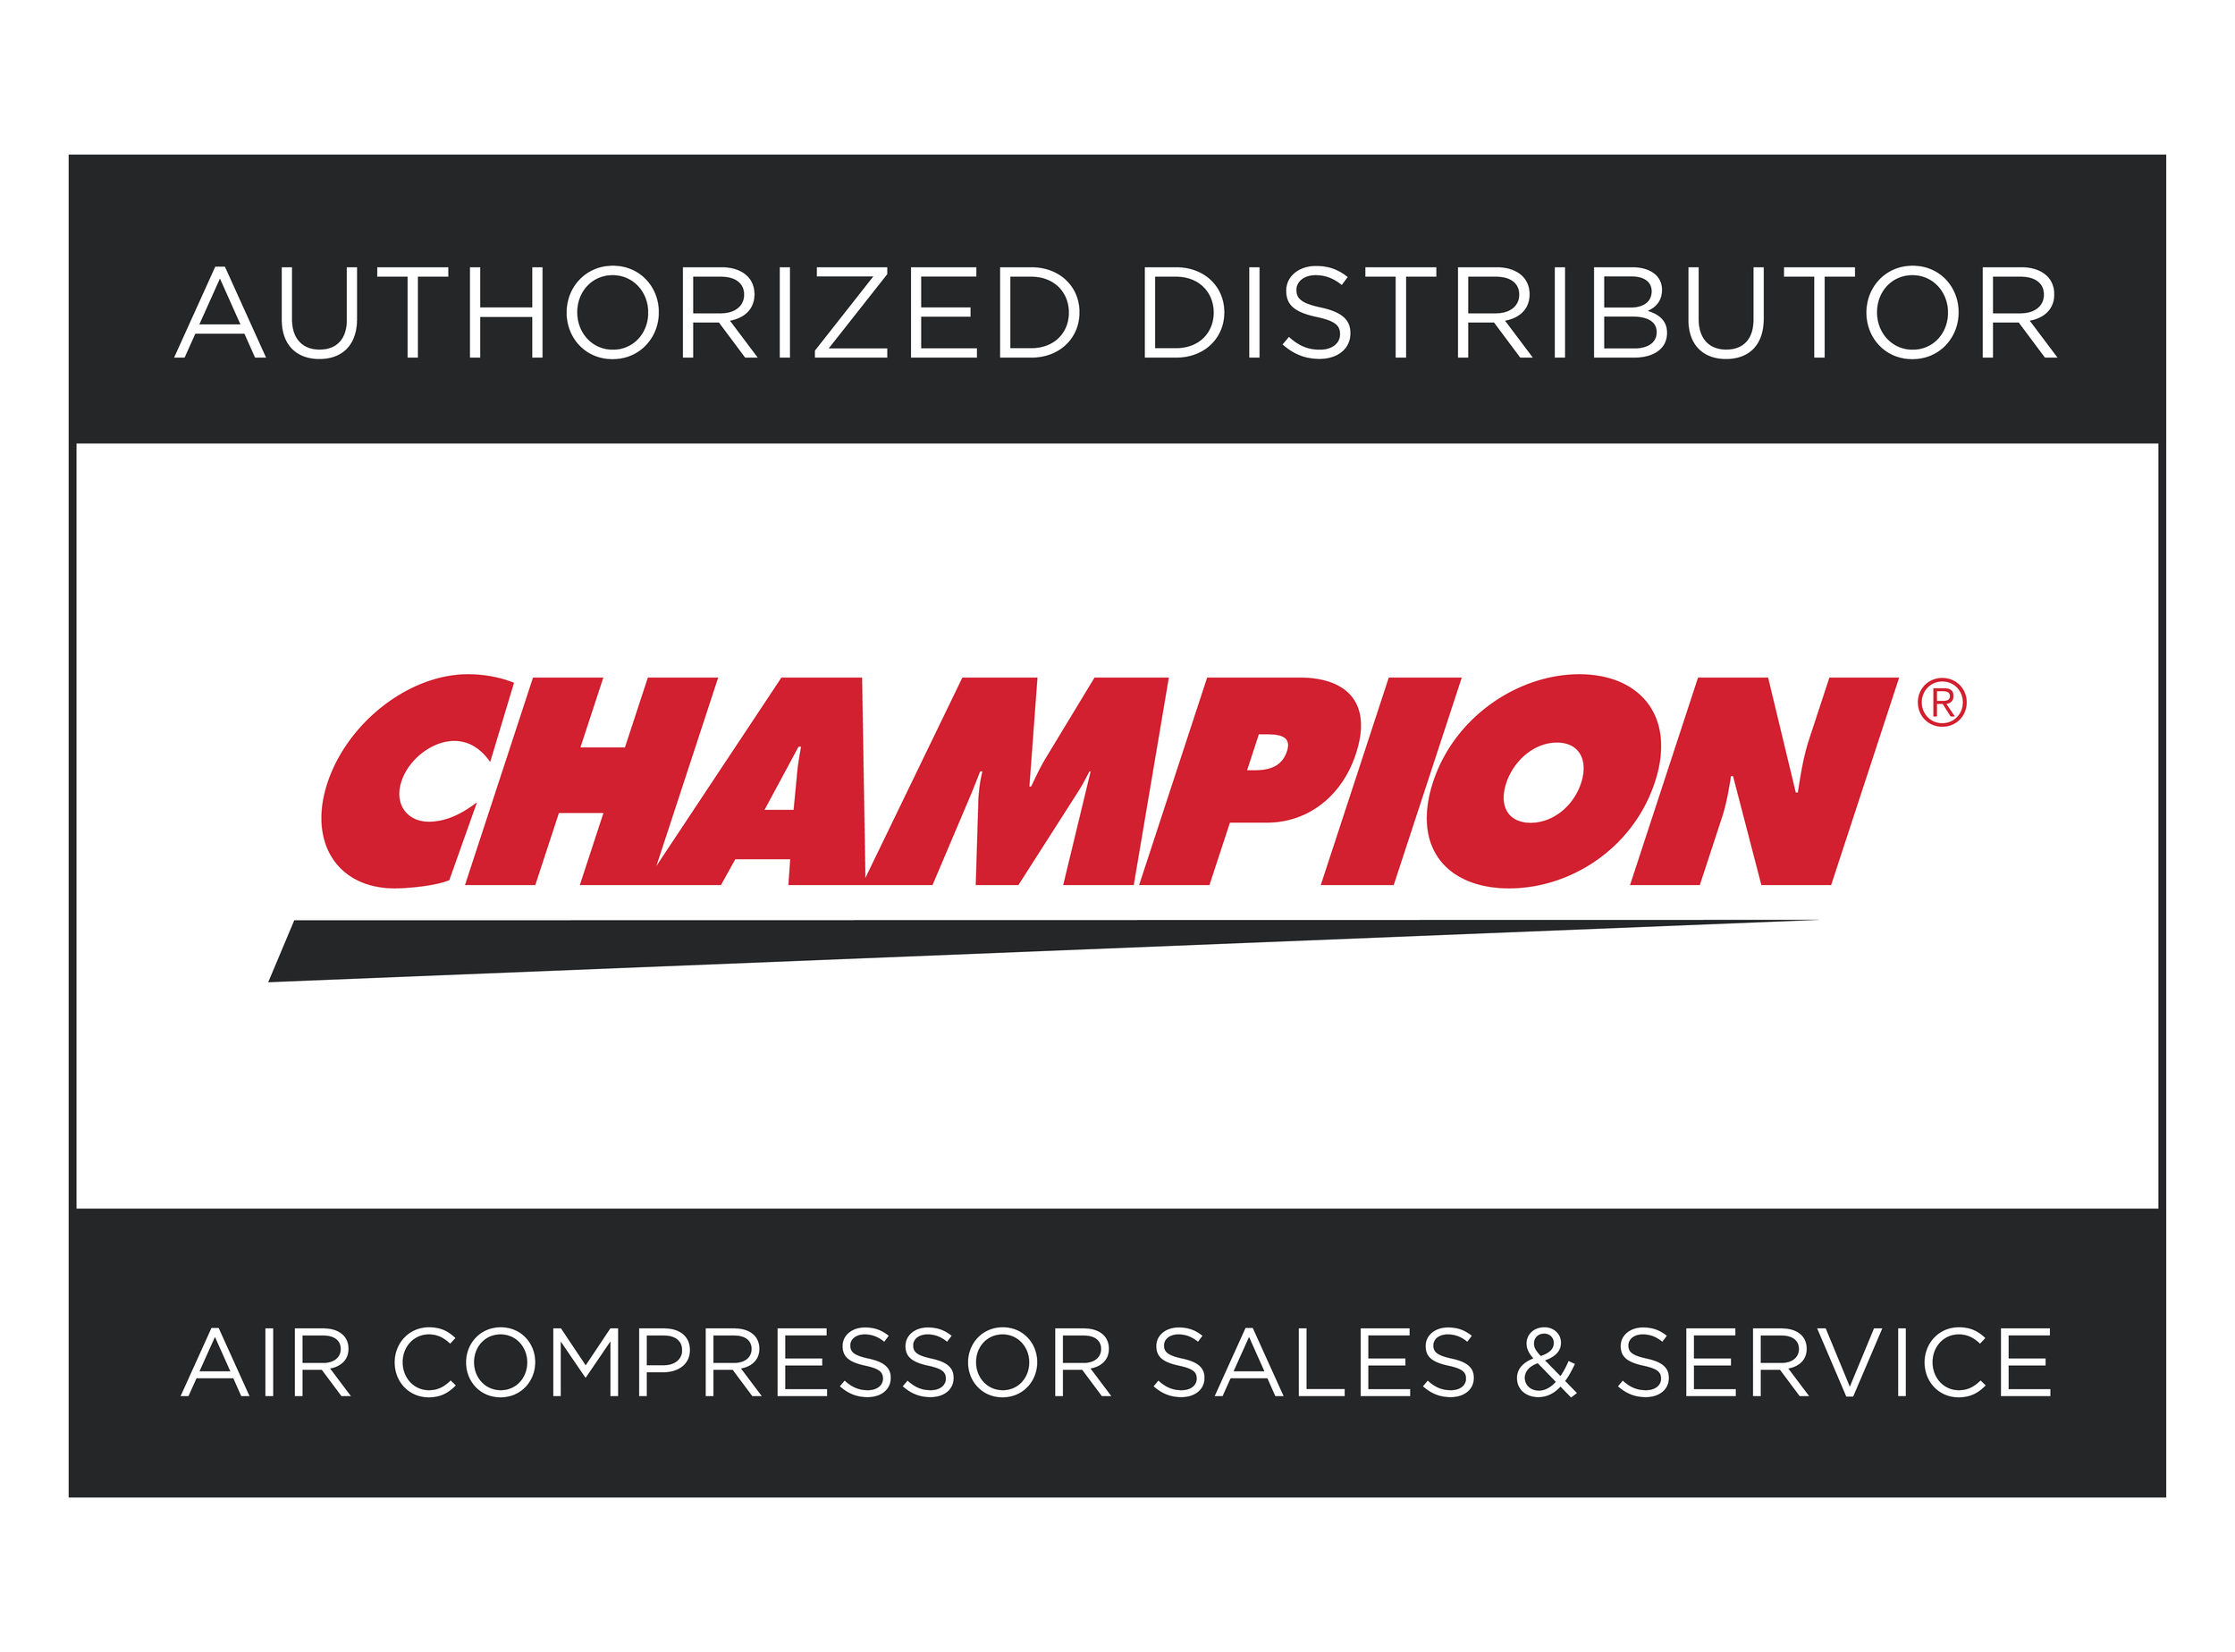 champion_Auth-Distributor_decal_v3.jpg